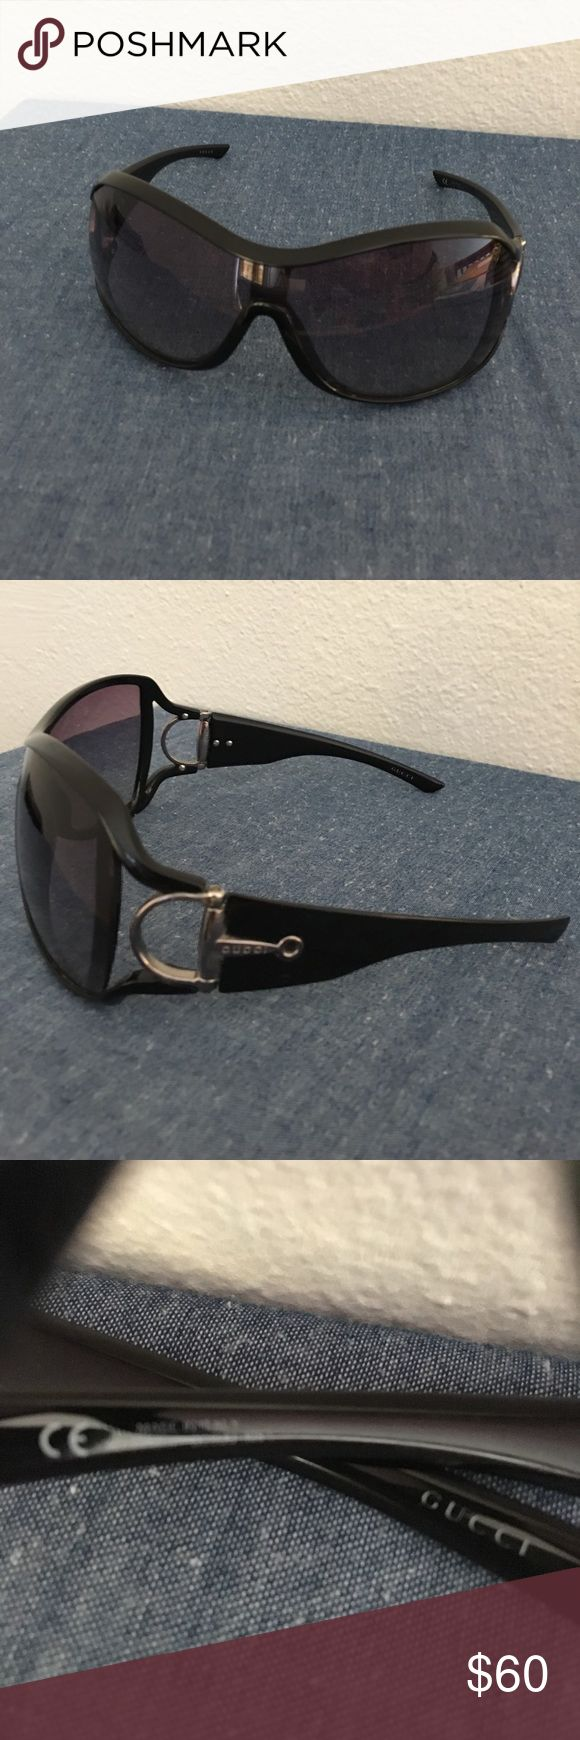 Gucci Oversized Shield Sunglasses GG2918/s 105 Authentic Gucci Sunglasses with Black Gradient Lenses. Some Sign of Wear but Nothing to Block Vision in ANY way. Made in Italy. Original Case Included. Gucci Accessories Sunglasses